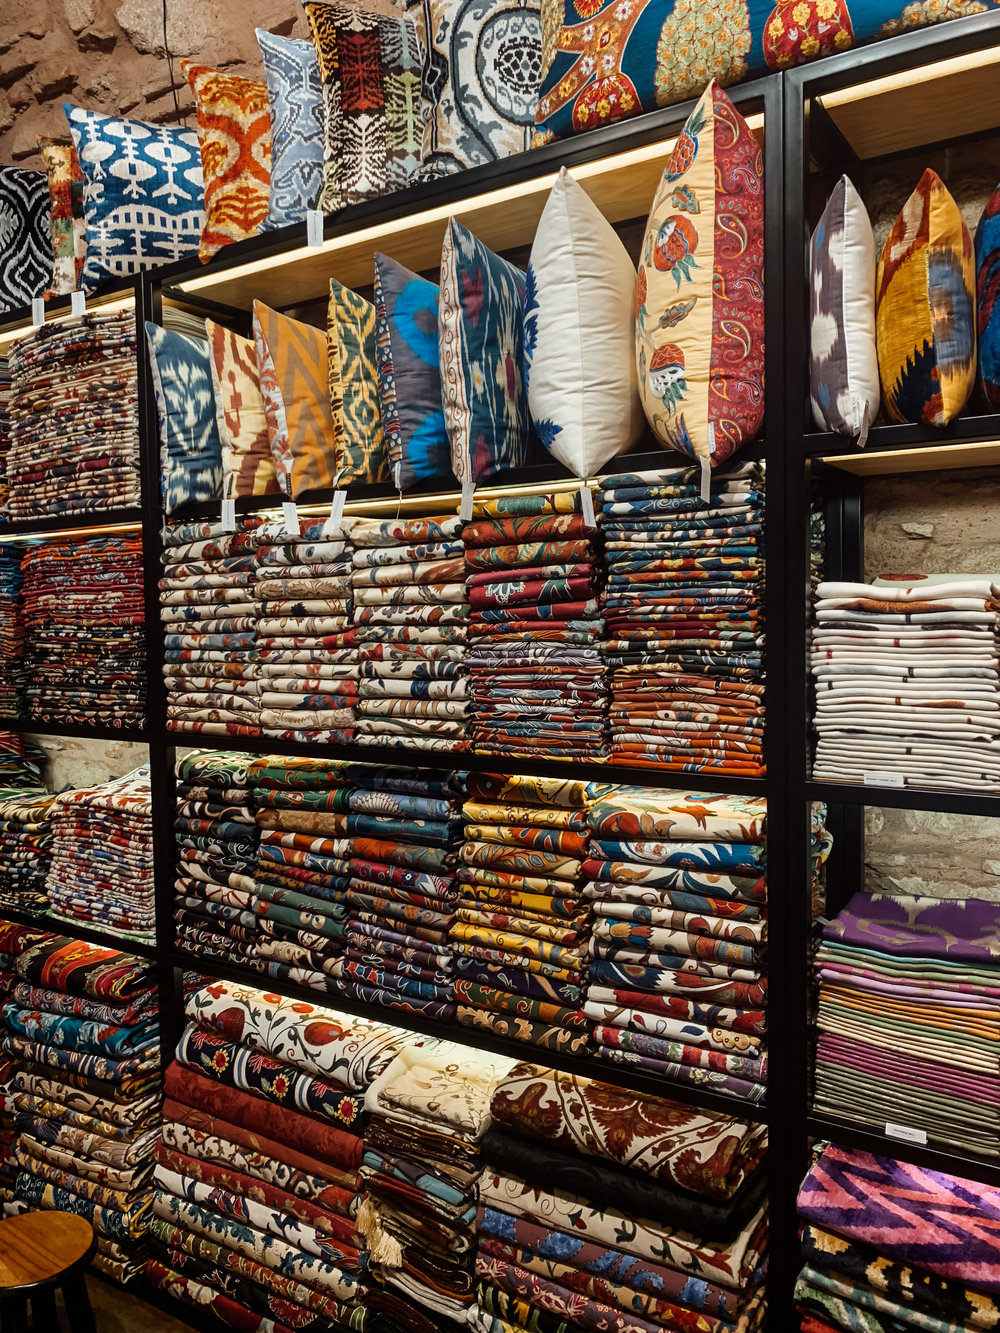 Mekhann sells amazing, high-quality pillows and textiles shop in the Grand Bazaar. They also have a store in Beyoglu.